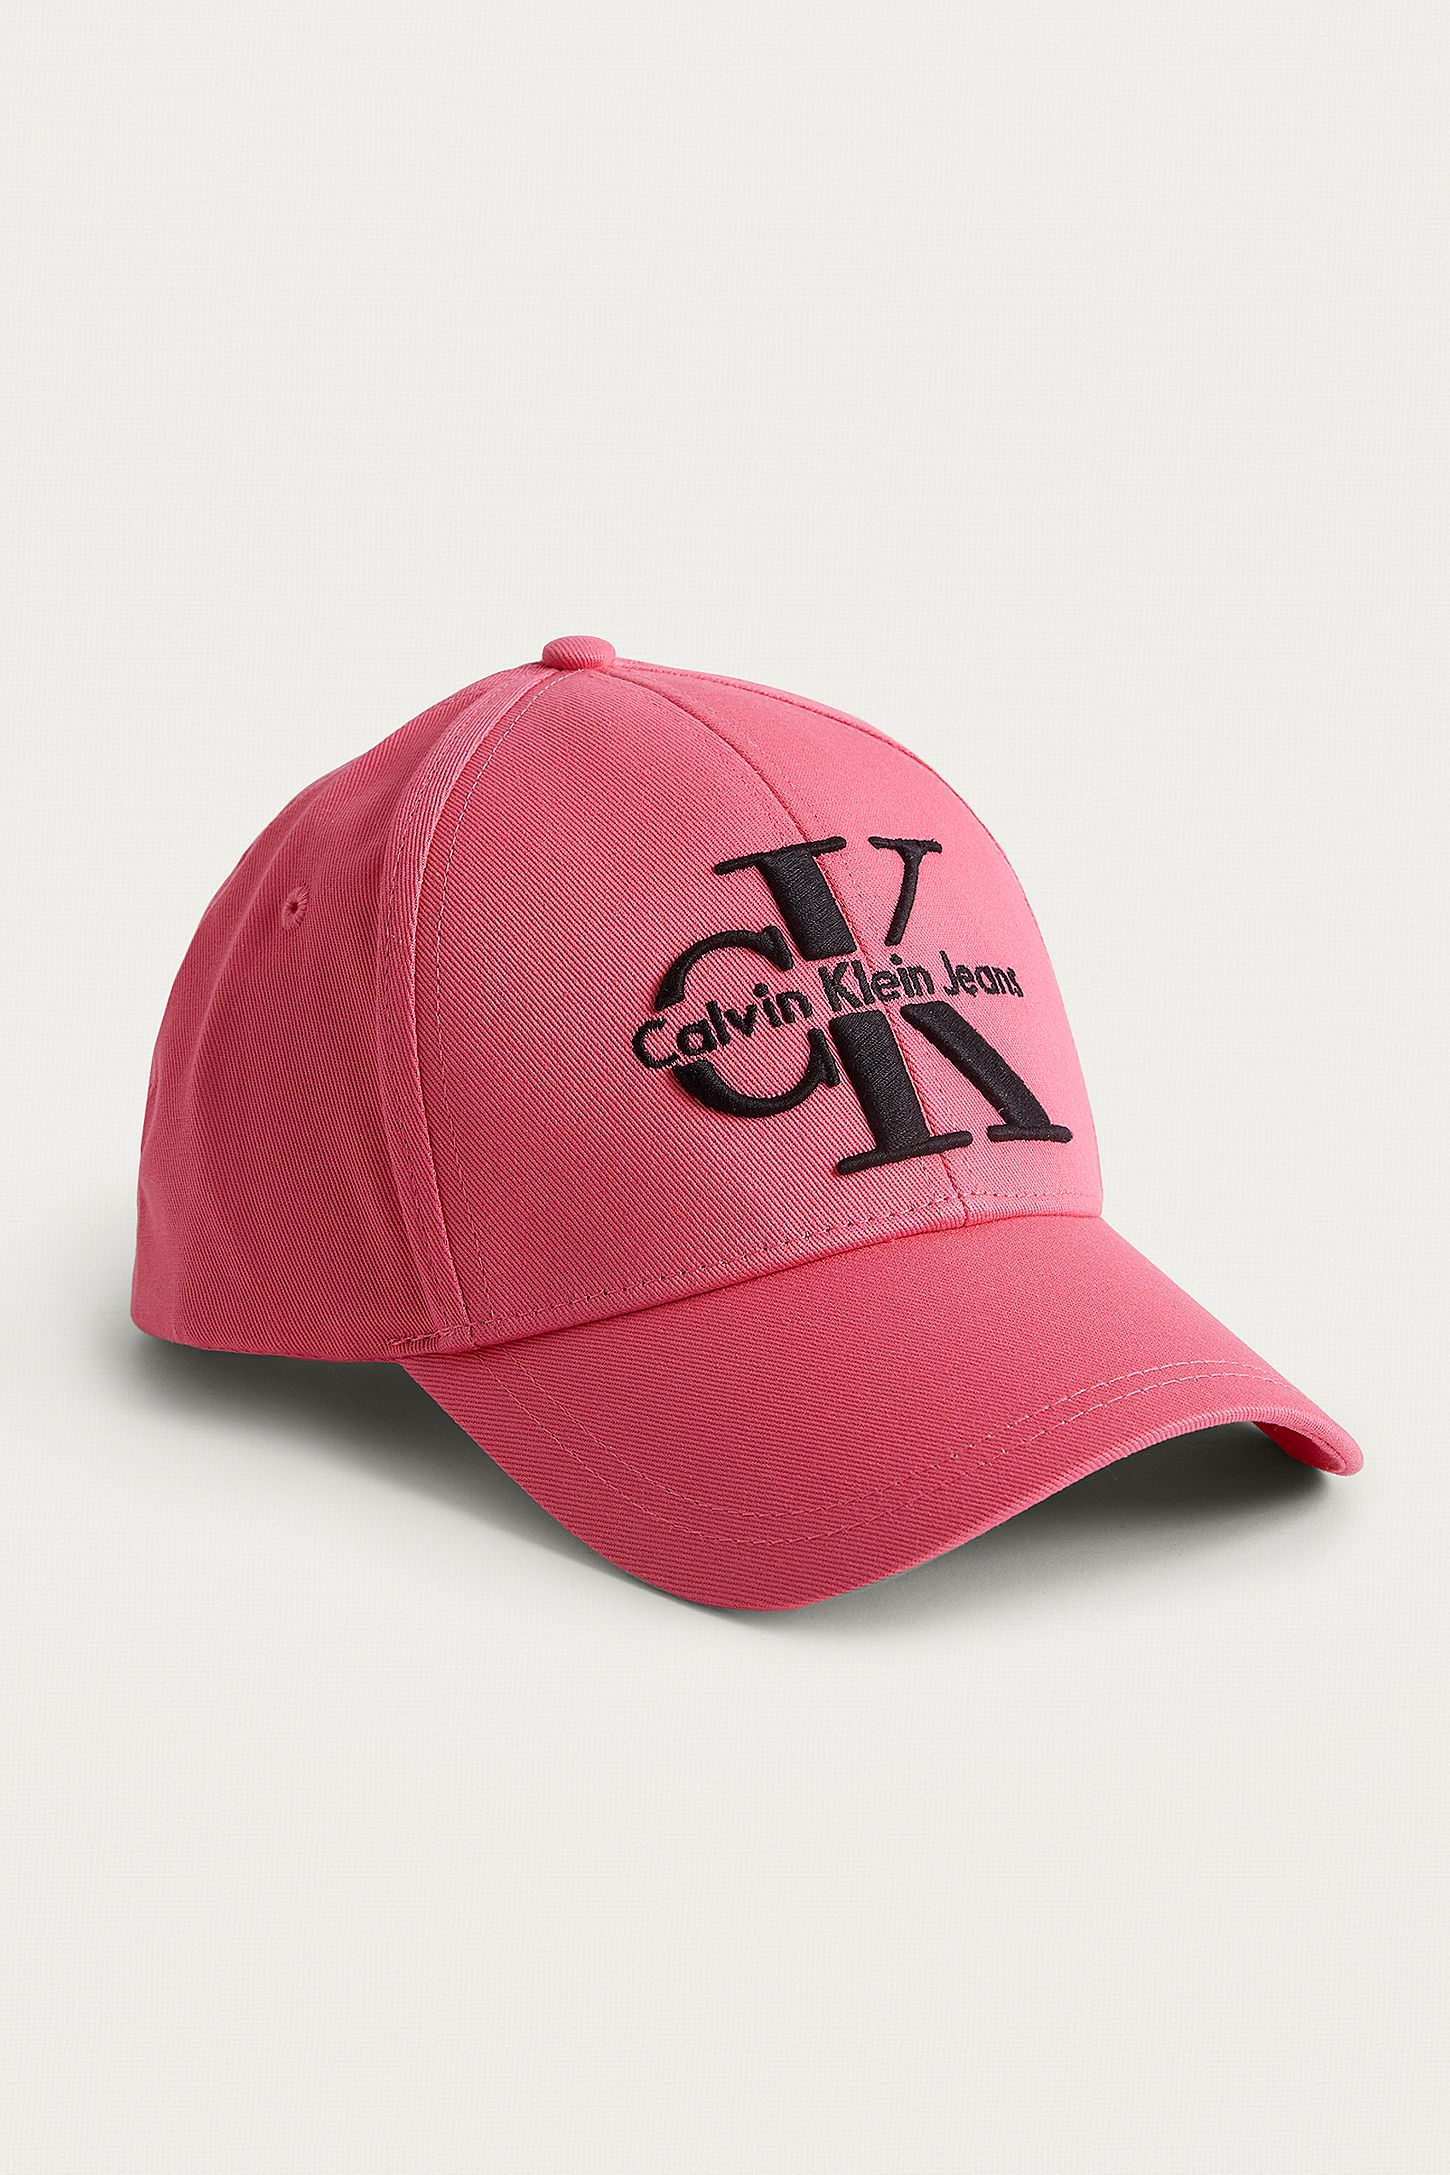 082d78d2bae Calvin Klein Reissue Pink Baseball Cap. Click on image to zoom. Hover to  zoom. Double Tap to Zoom